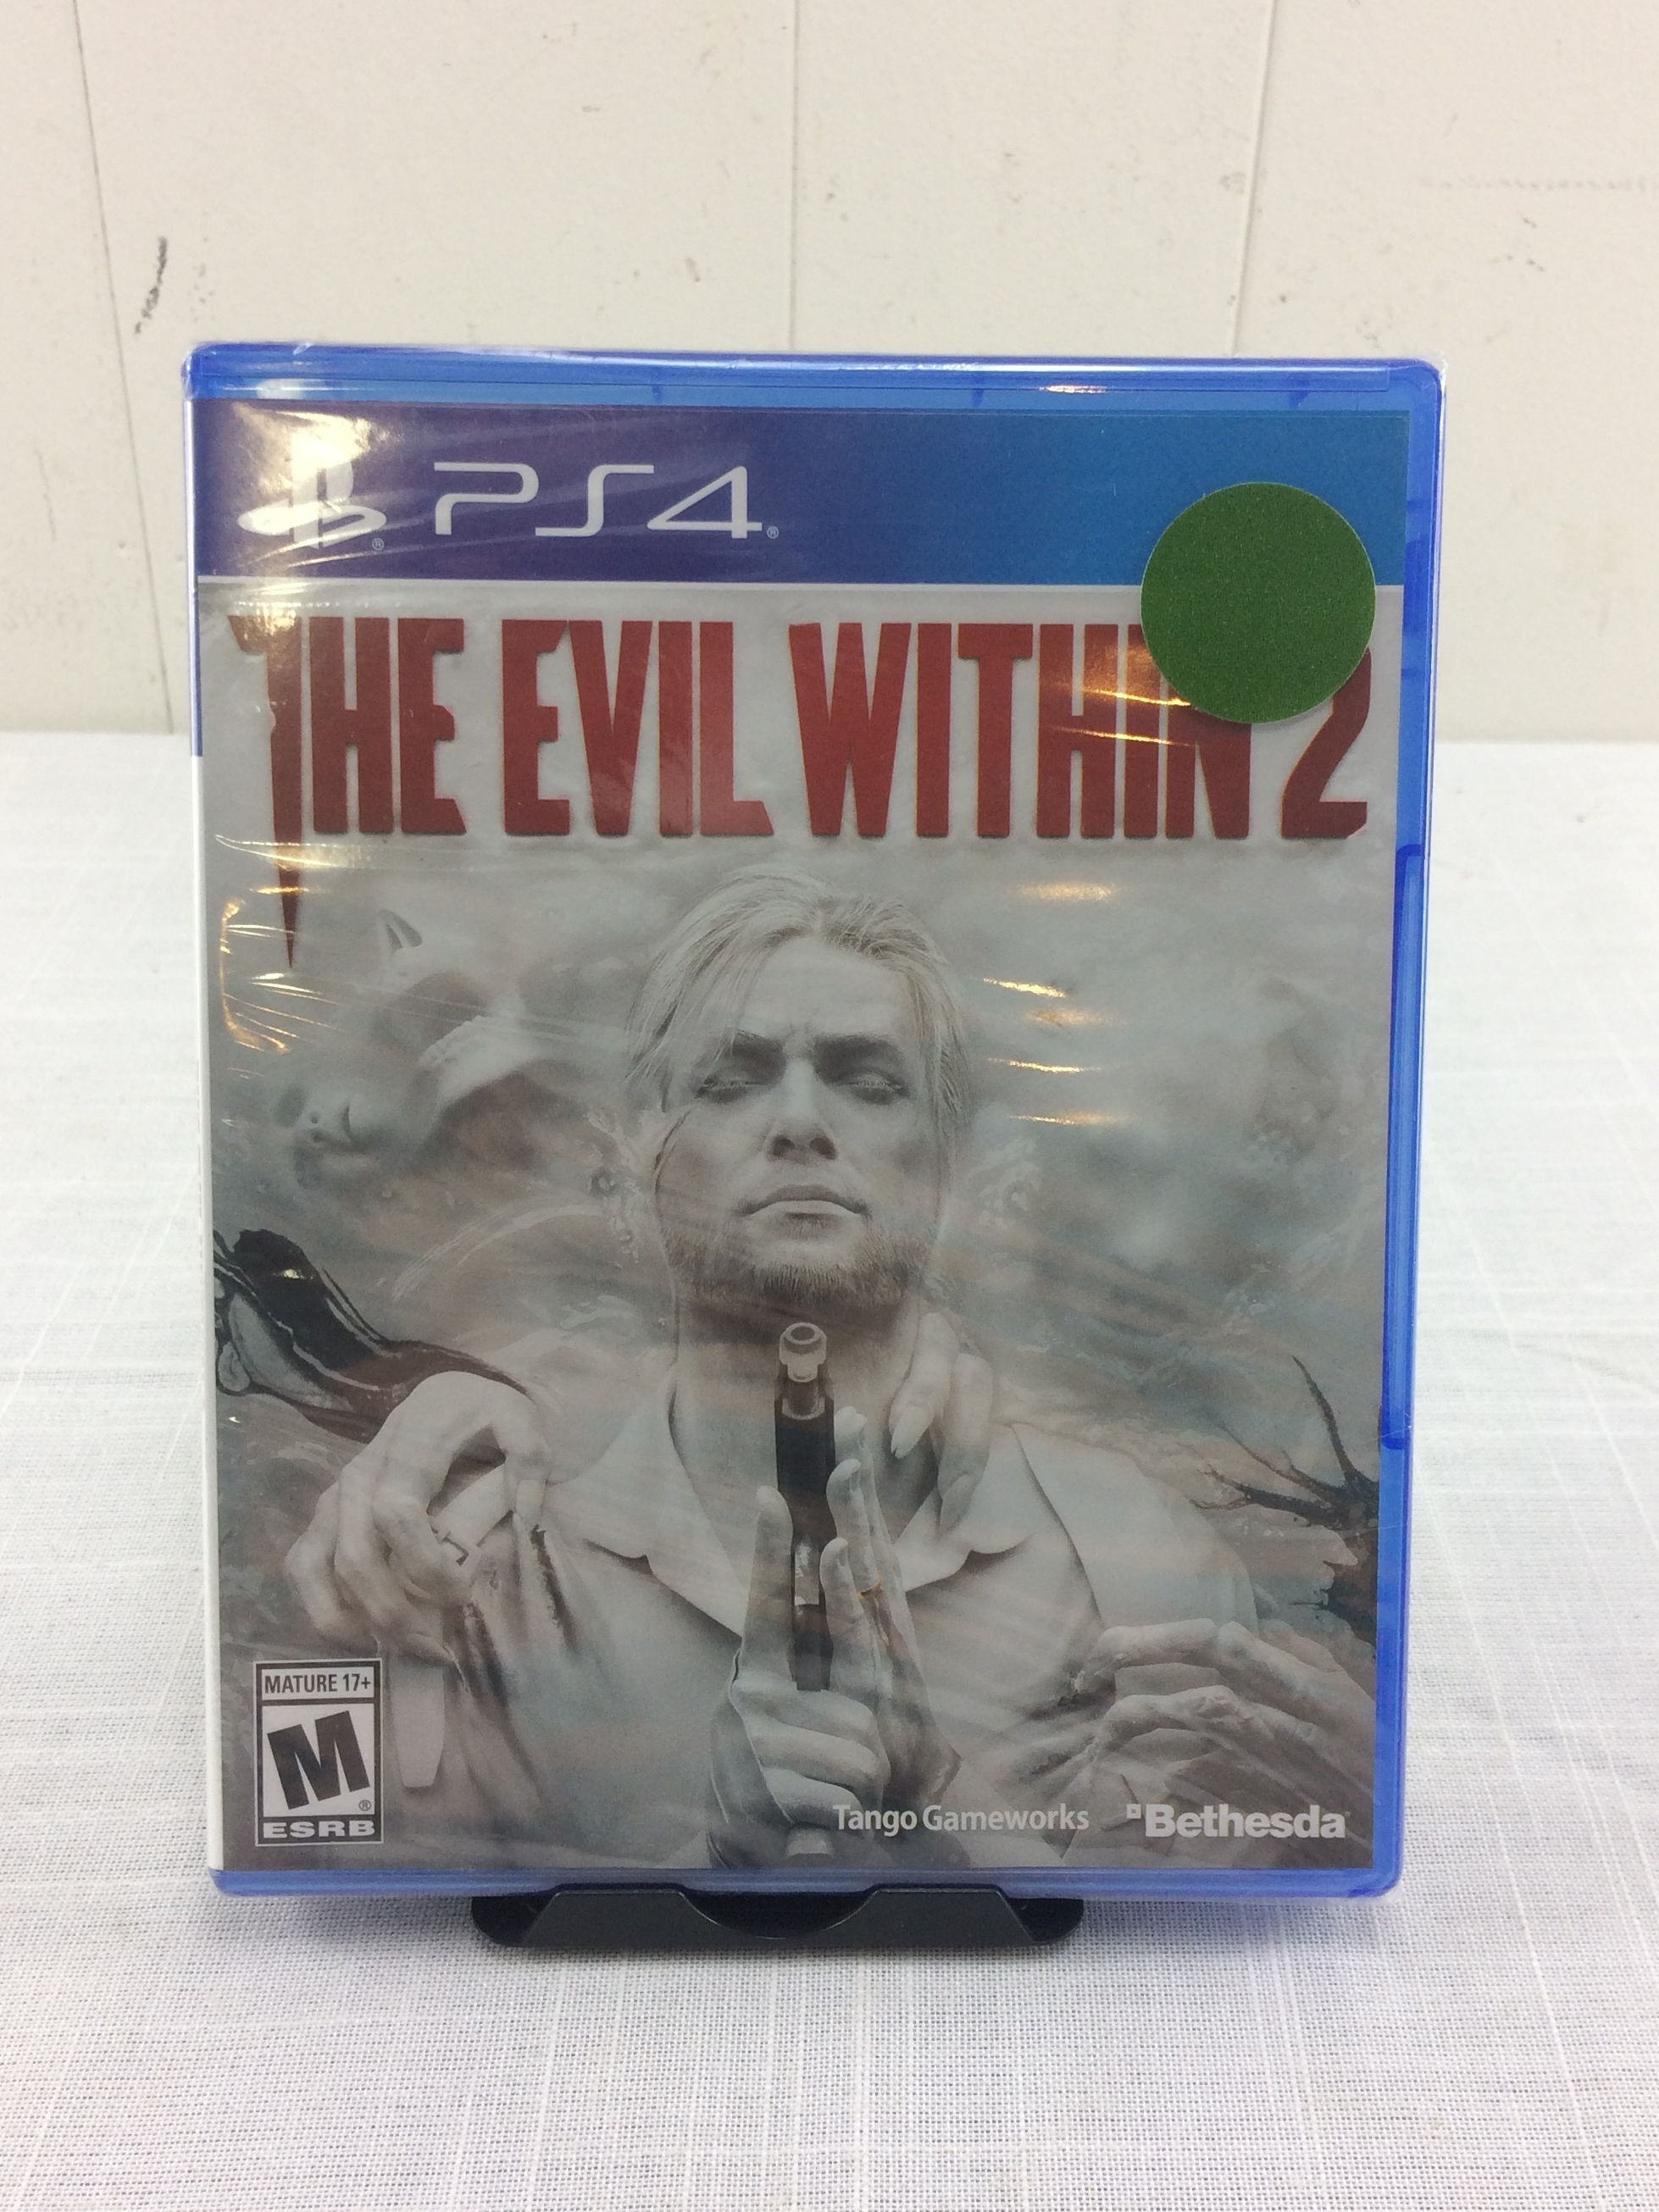 The Evil Within 2 - Playstation 4 - New/Sealed